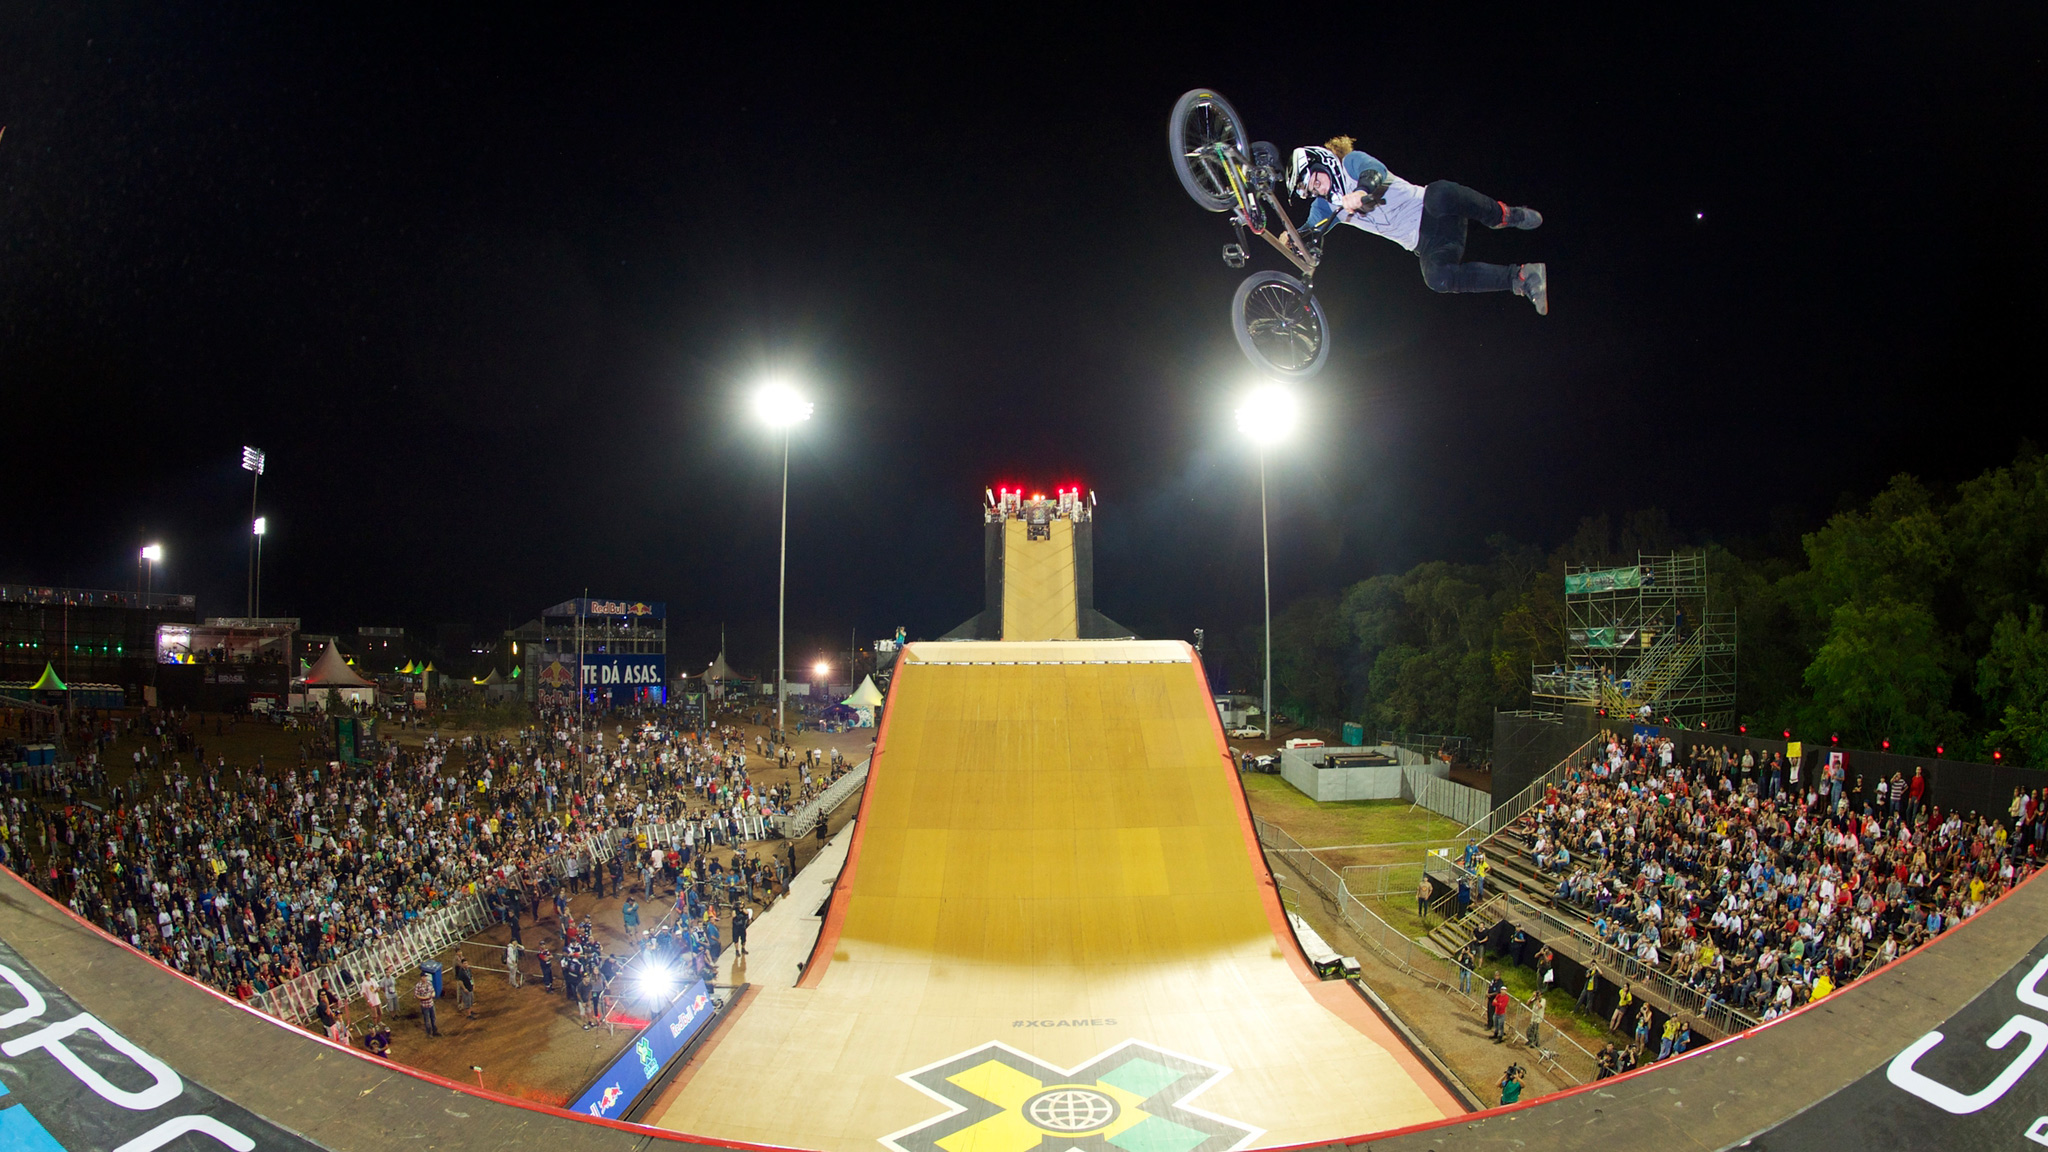 X Games Foz BMX Big Air gold medalist Zack Warden has a new trick in store for the competition in Barcelona.